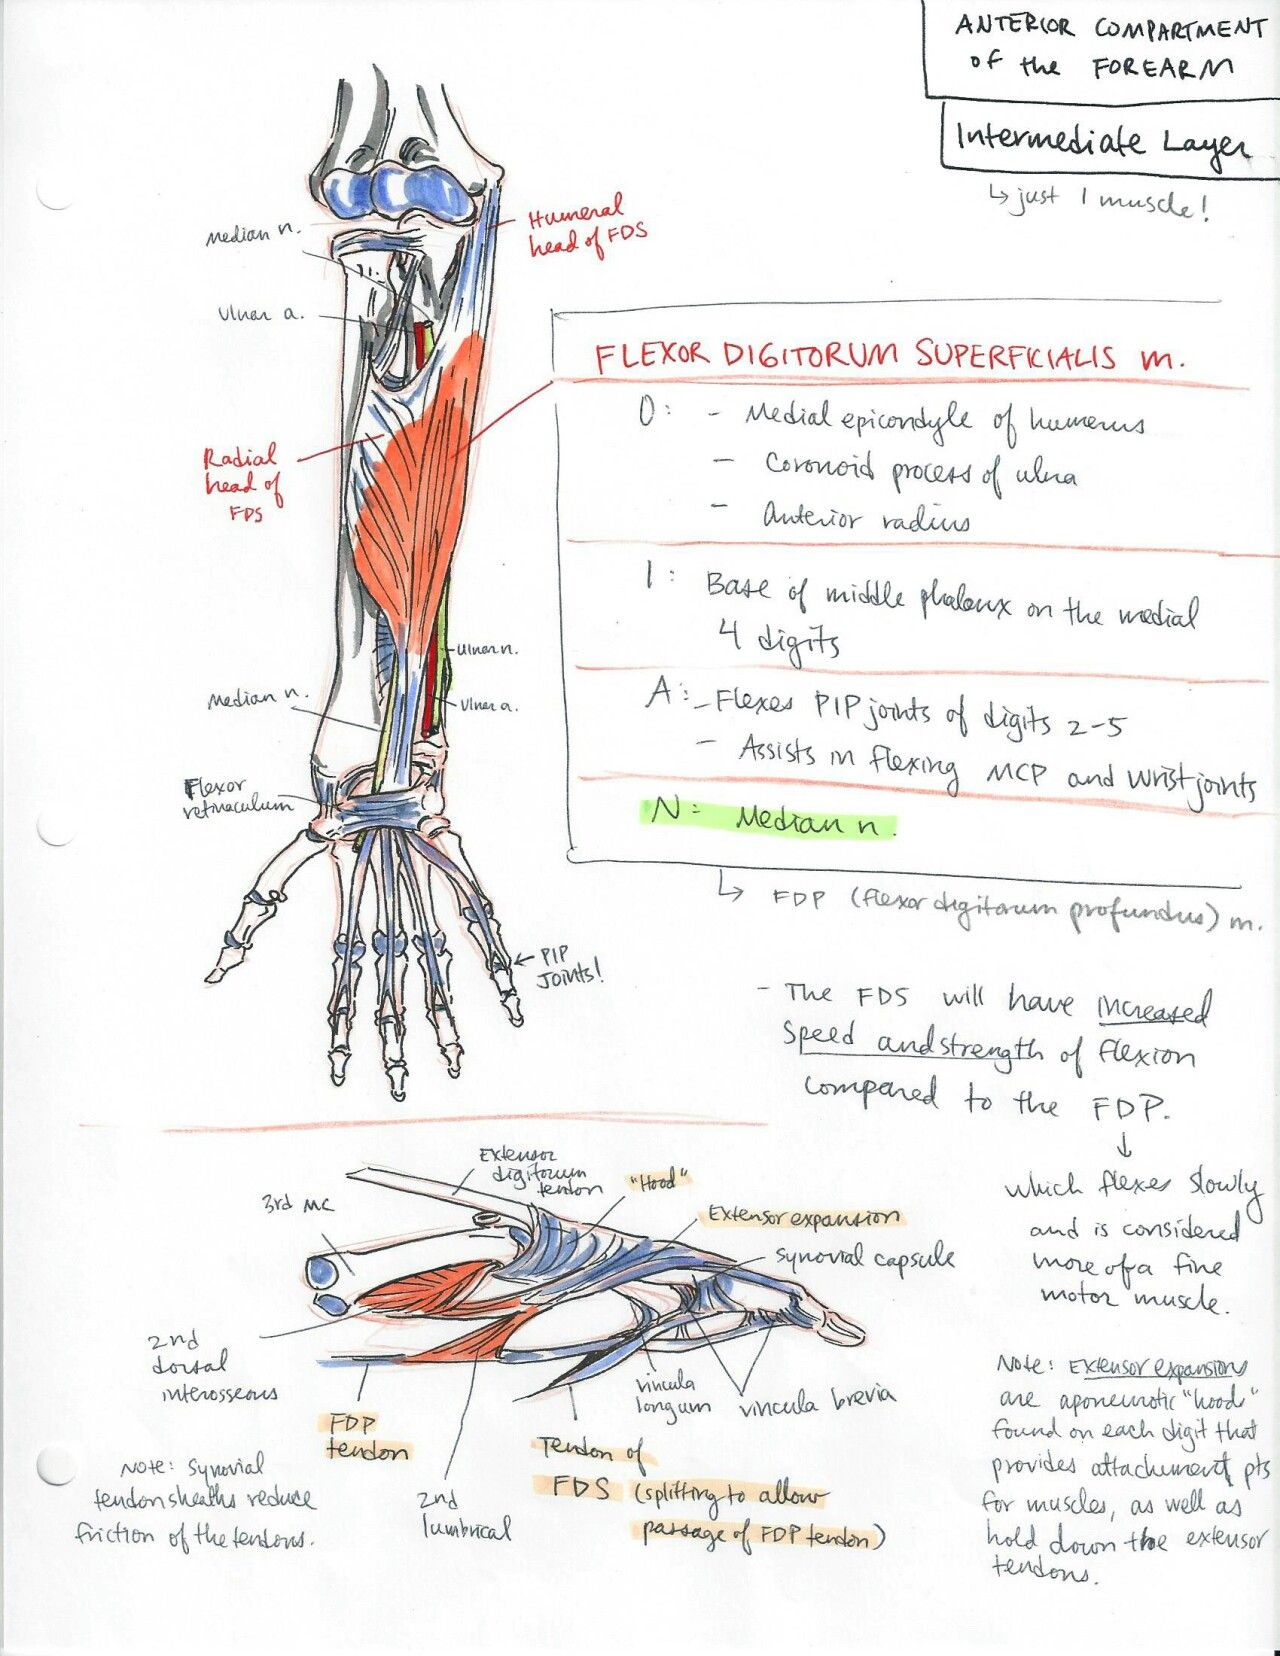 Pin by Shayma on Bones | Pinterest | Medical and School